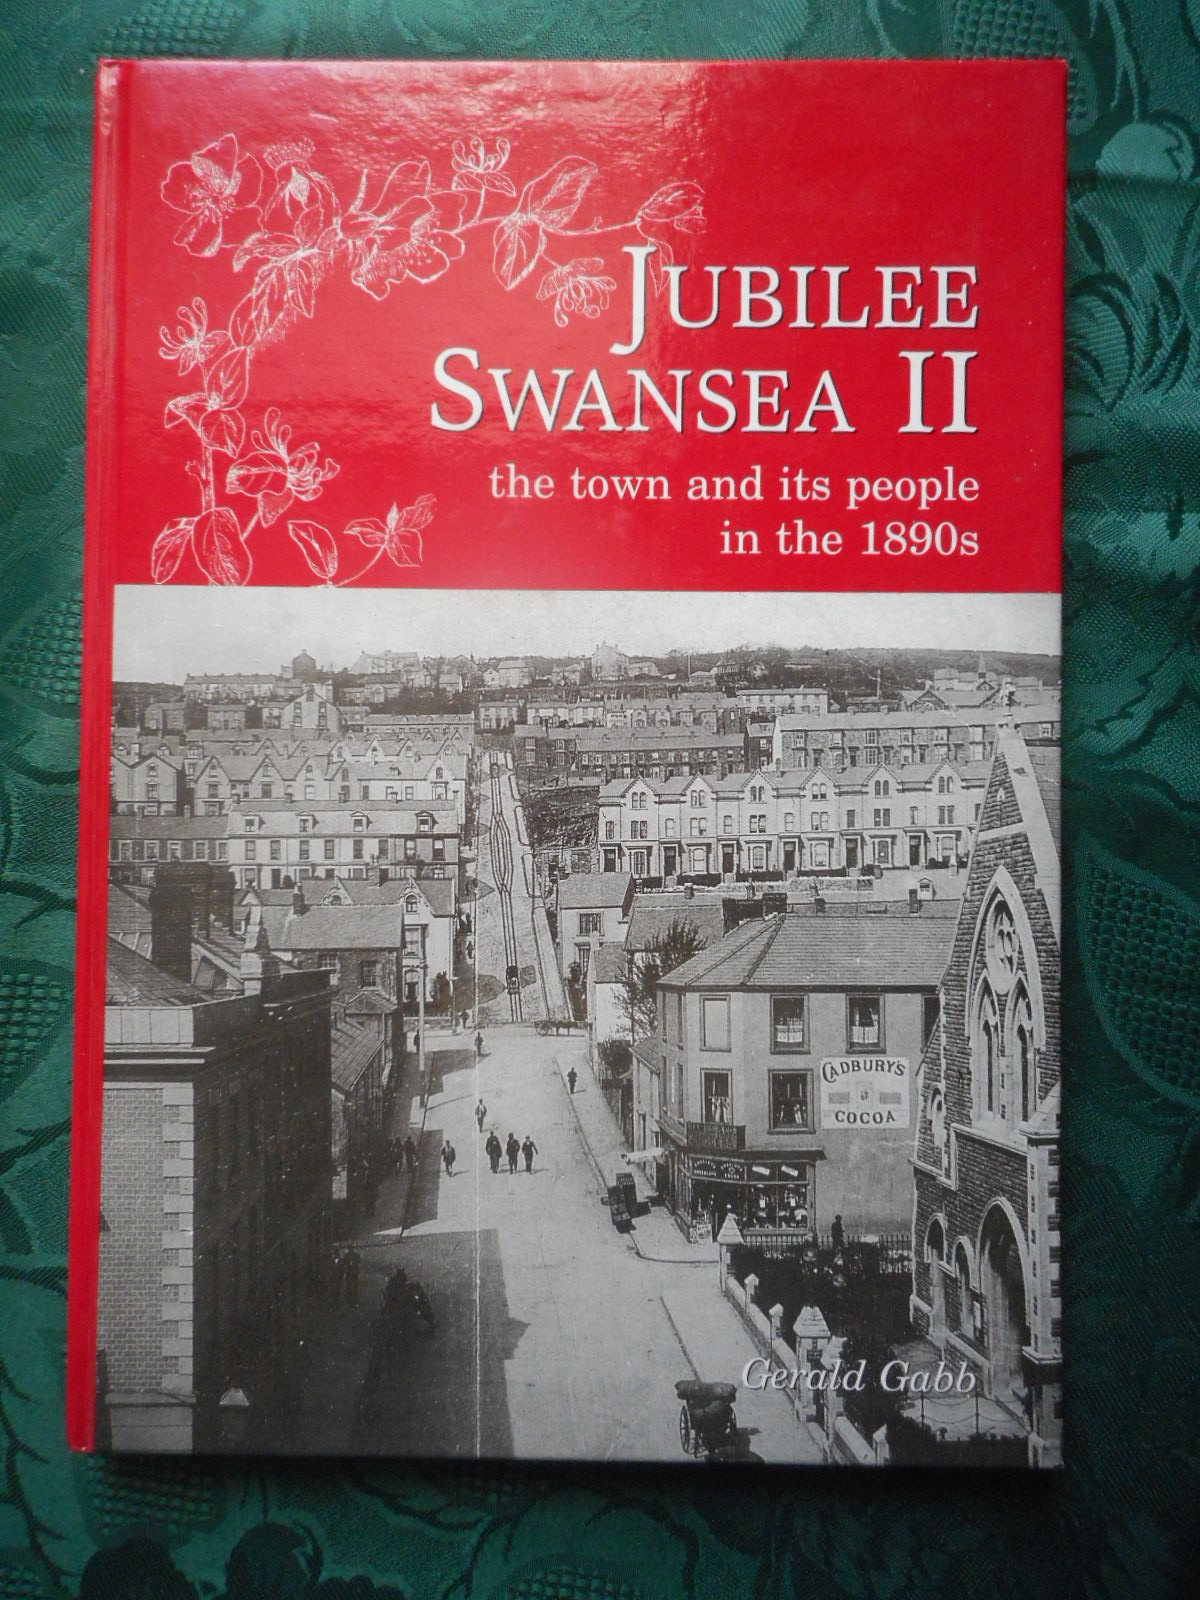 Image for Jubilee Swansea: the Town and its People in the 1890s. Volume II. (Jubilee Swansea II)